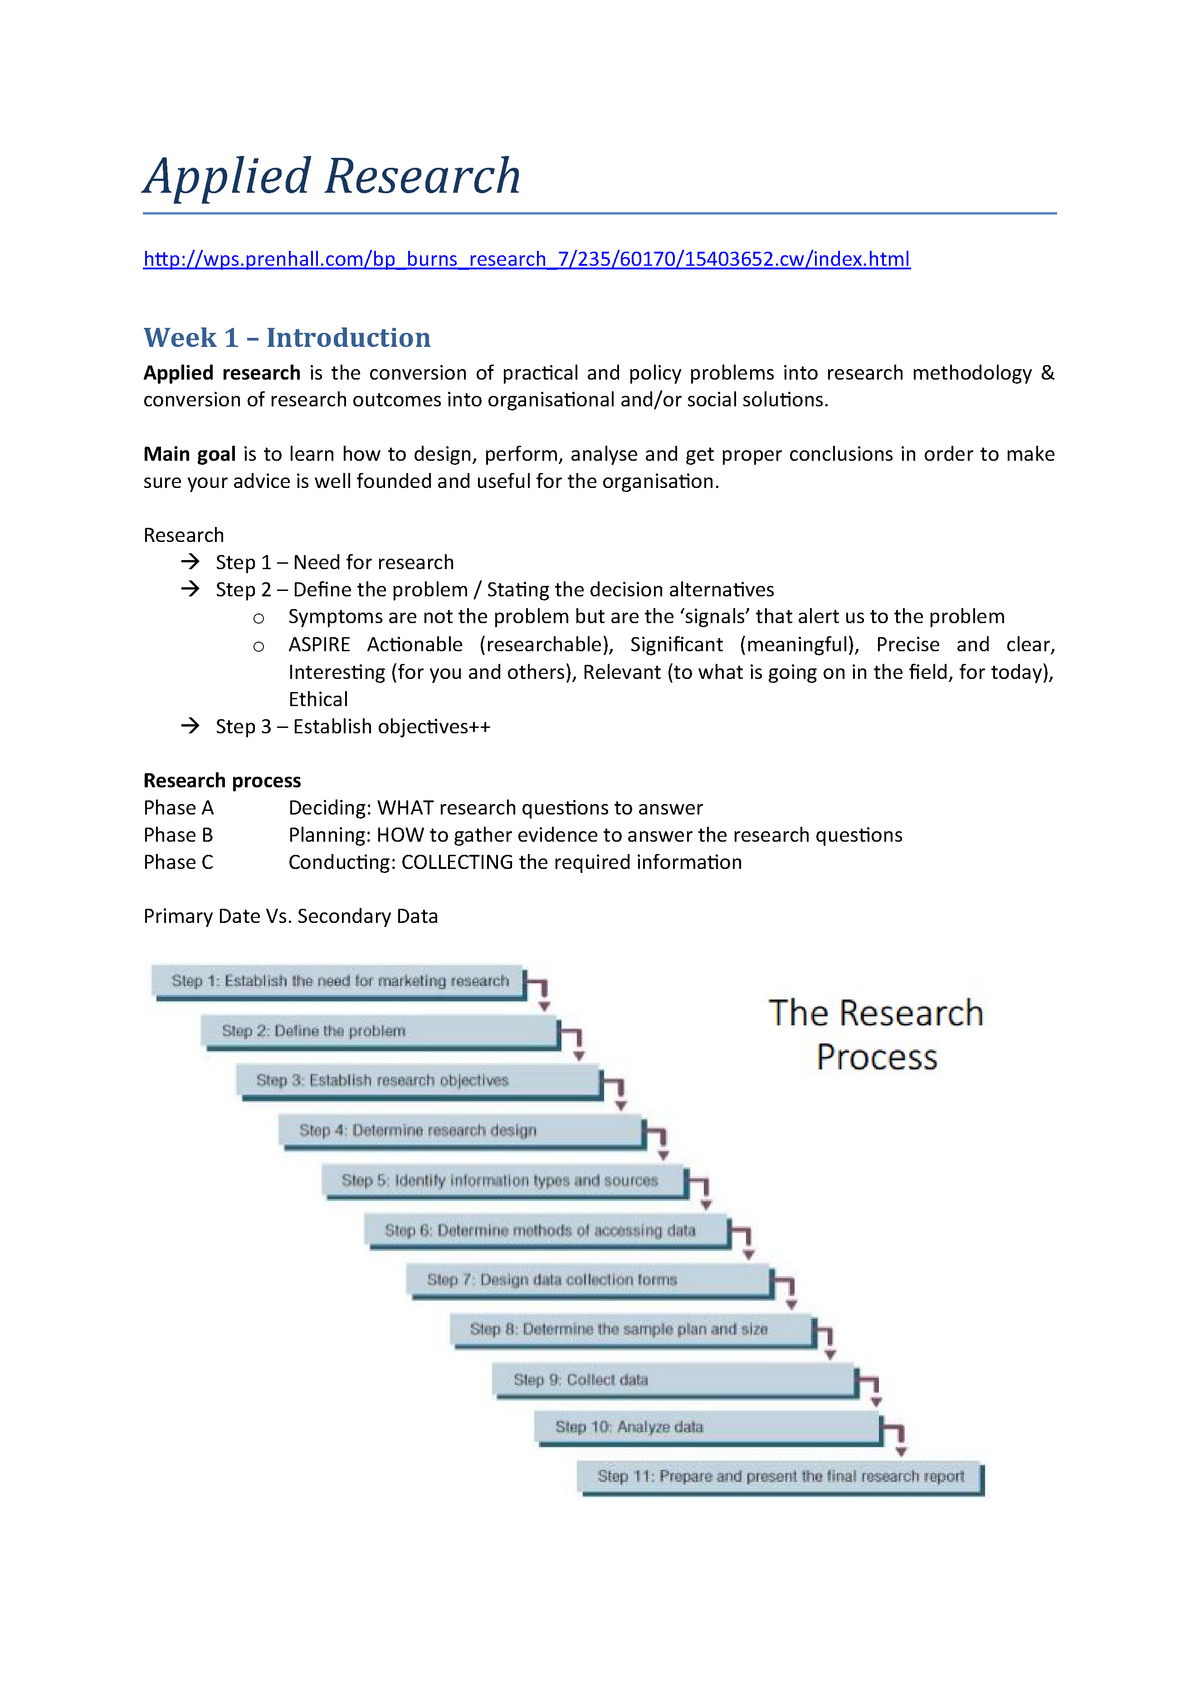 Summary Marketing Research lectures - JIC-APP 1V-11 - StuDocu